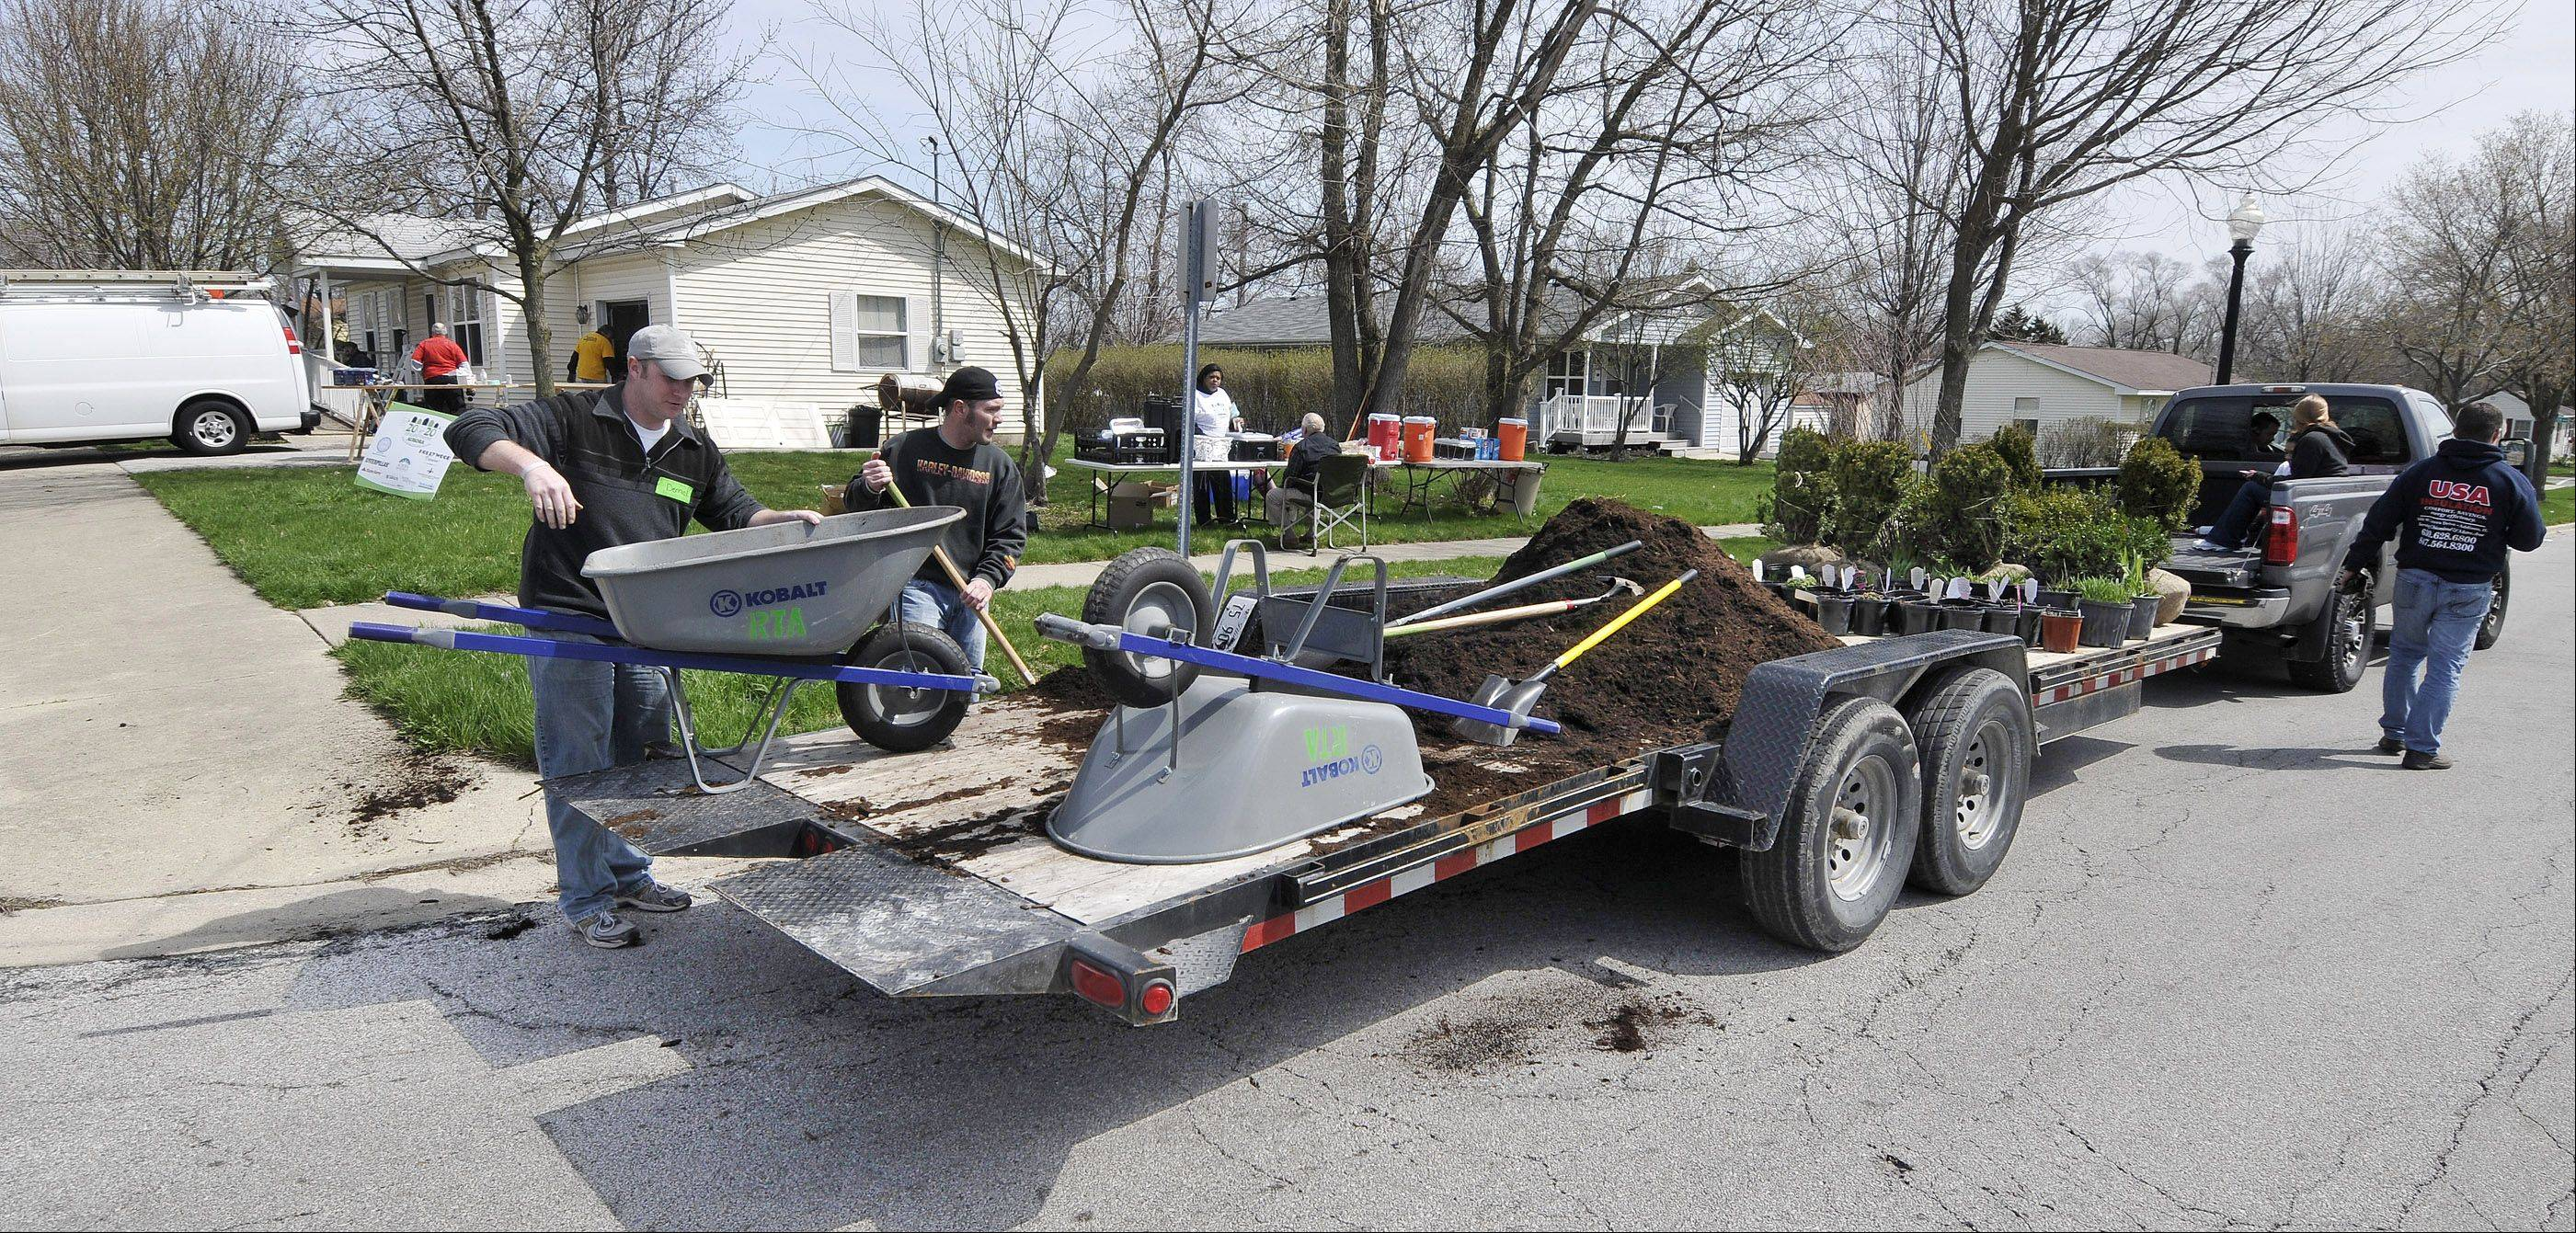 Employees from Chad Ford's Snow Removal and Concrete in Aurora donated their time and trucks Friday to deliver mulch and landscaping materials to locations in the near east side Pattersonville neighborhood where Rebuilding Together Aurora volunteers were rehabbing homes during the 20th annual April rebuilding event.